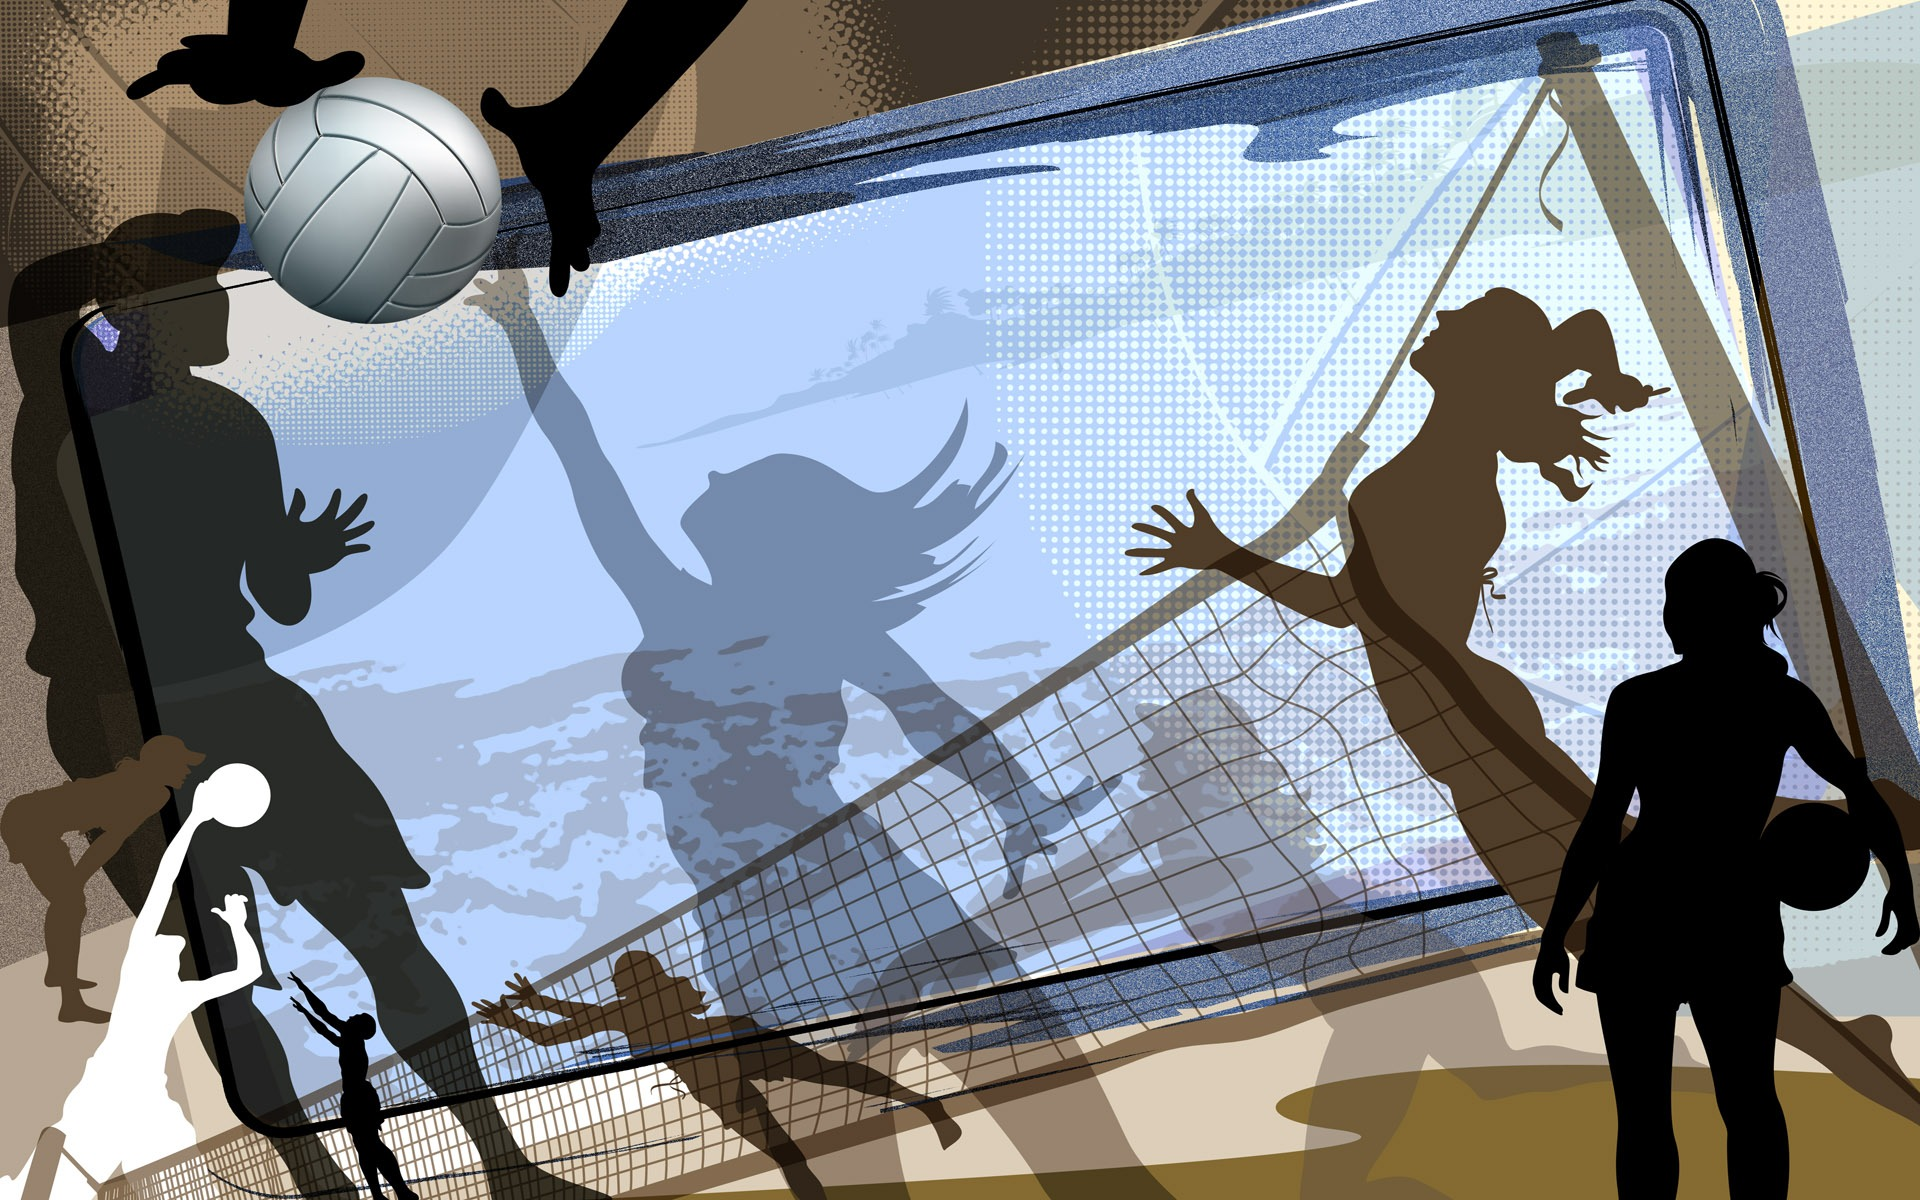 Abstract Triangle Volleyball Player Silhouette Stock: Free Volleyball Wallpapers And Backgrounds